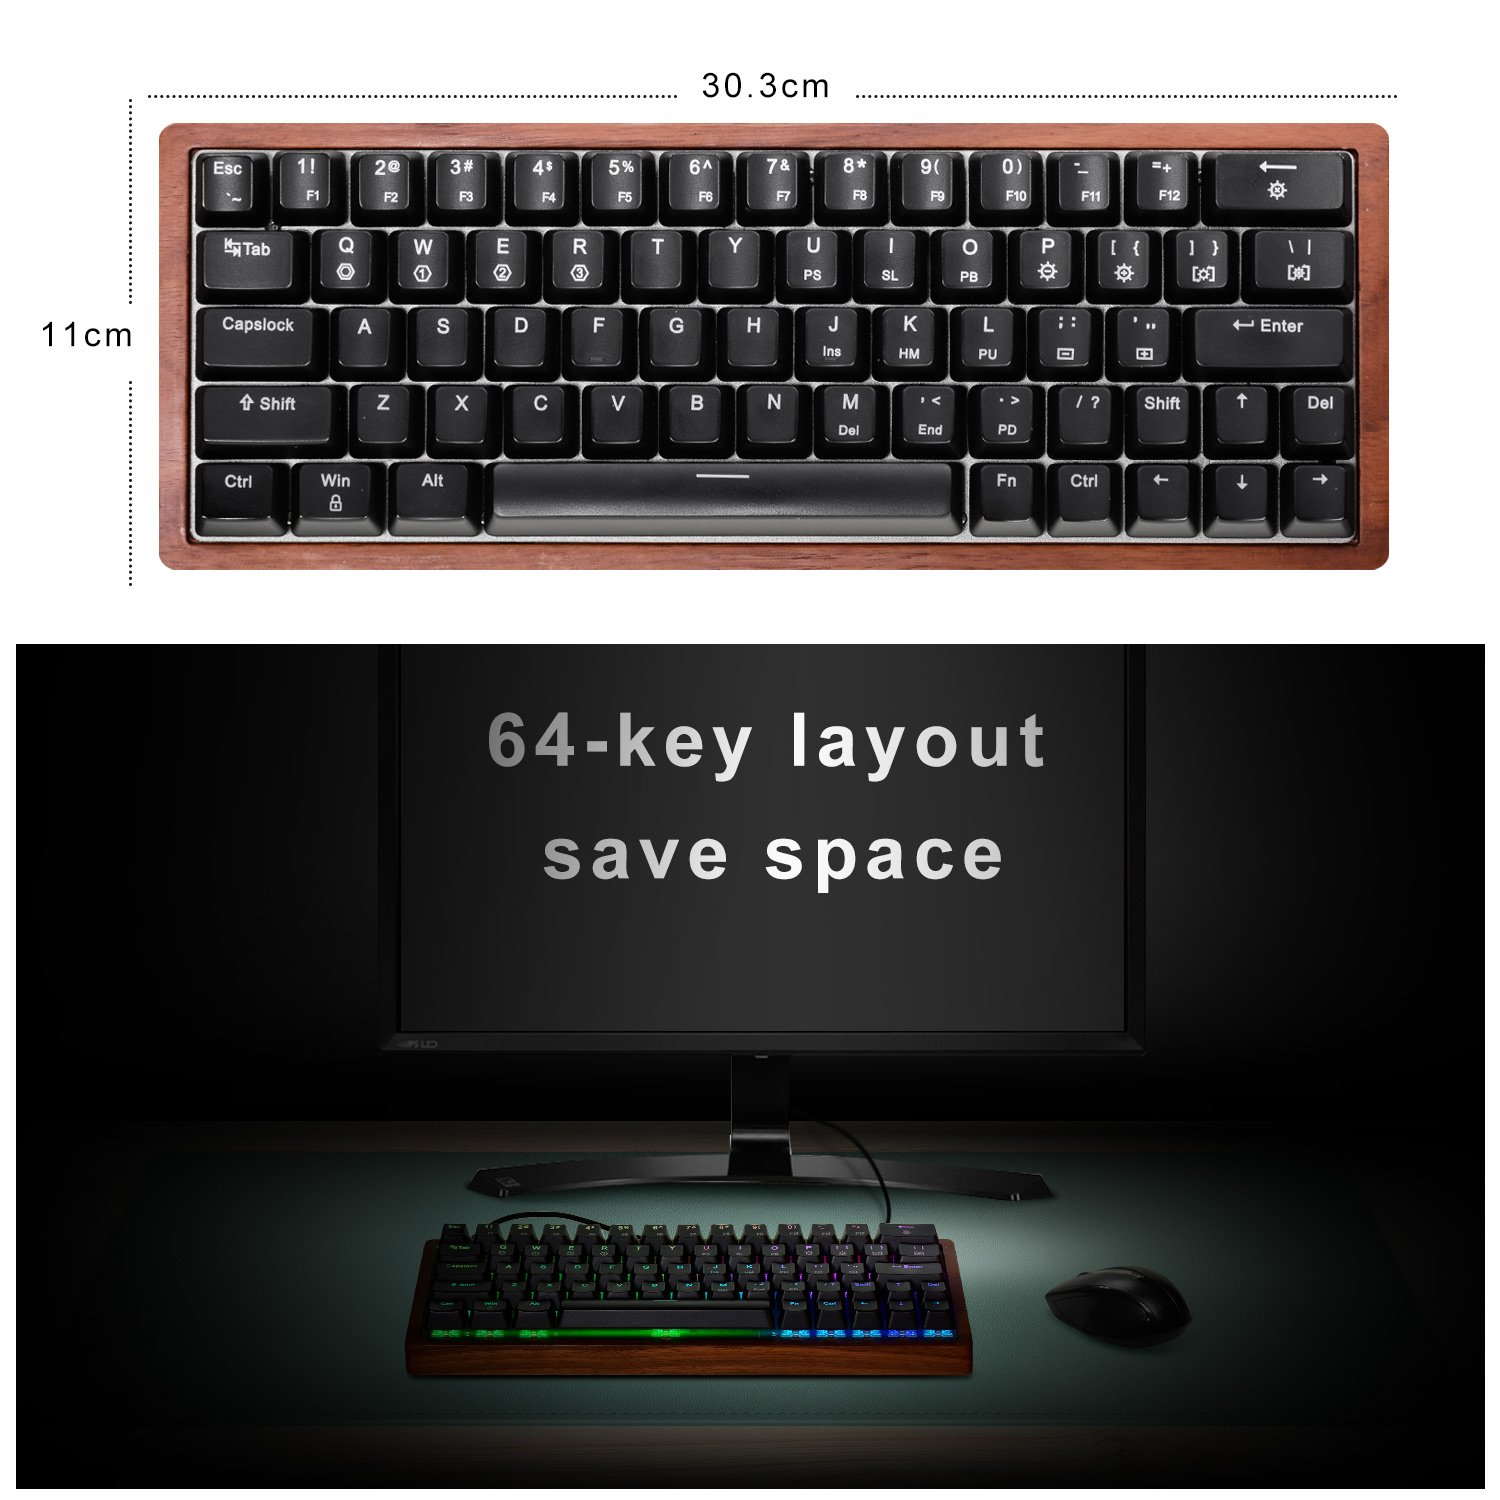 RGB LED Backlit and Wooden Case for Mac PC Laptop Cherry MX Red Switches MAIDERN RGB Mechanical Gaming Keyboard,Hot-plugging Compact 64 Keys